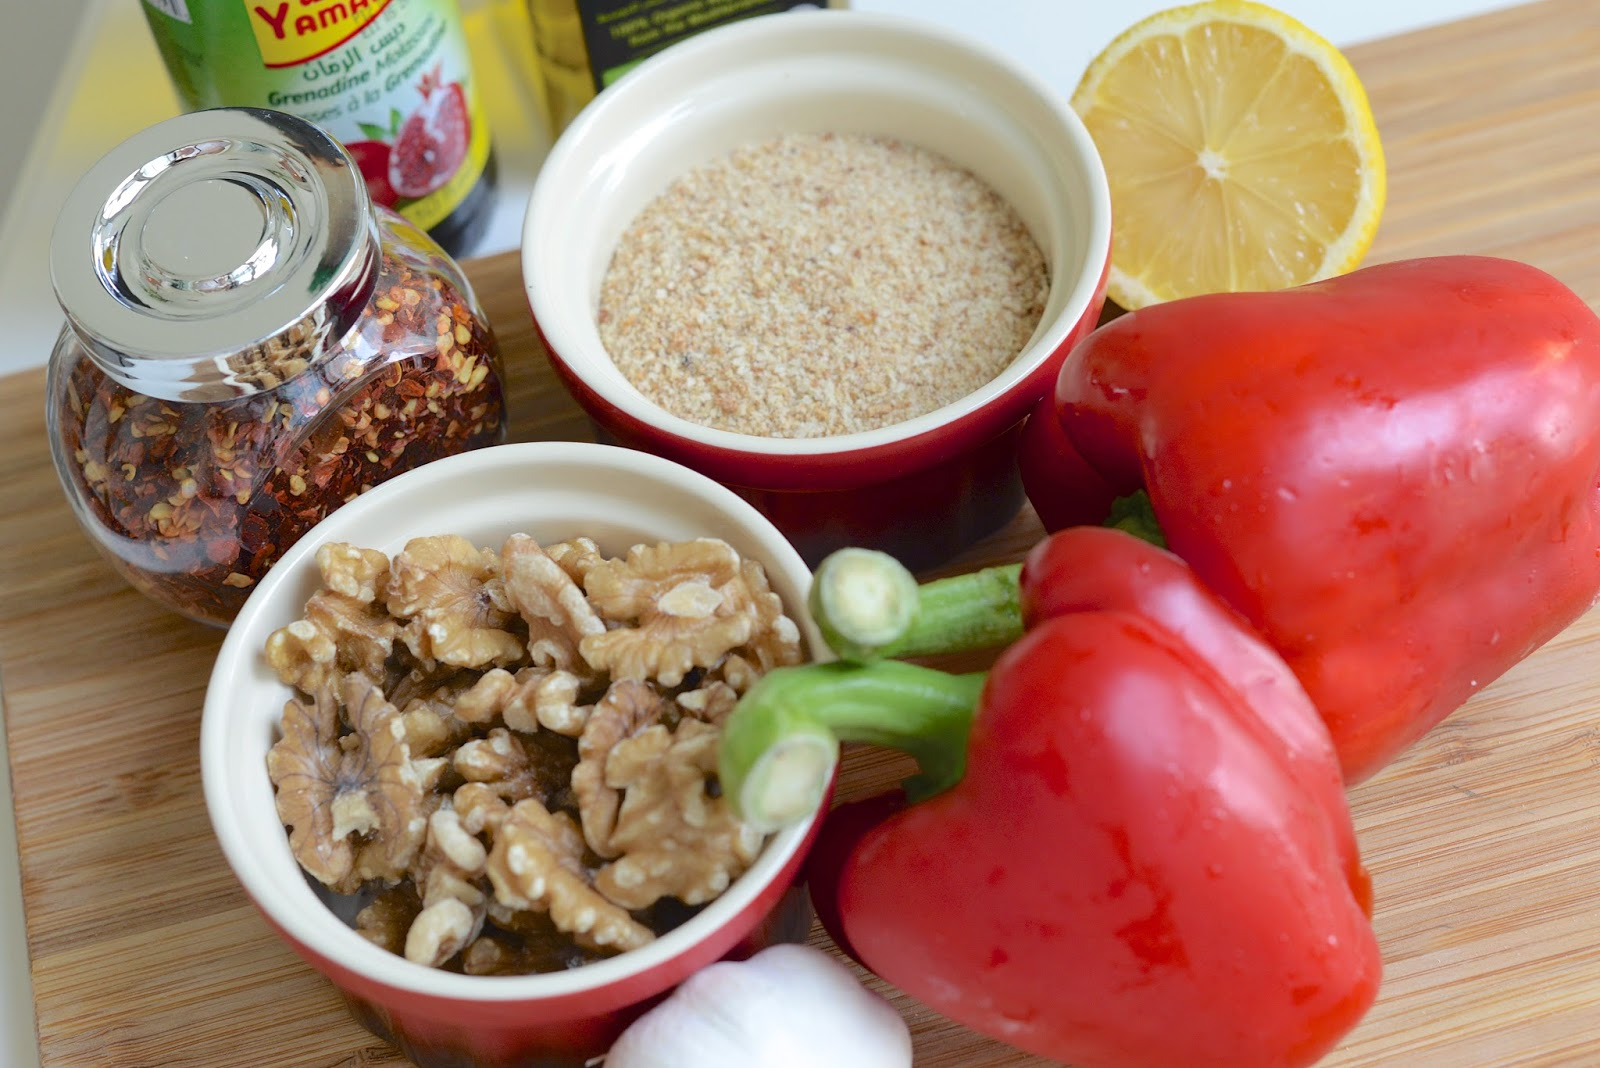 Homemade Muhammara Recipe Ingredients